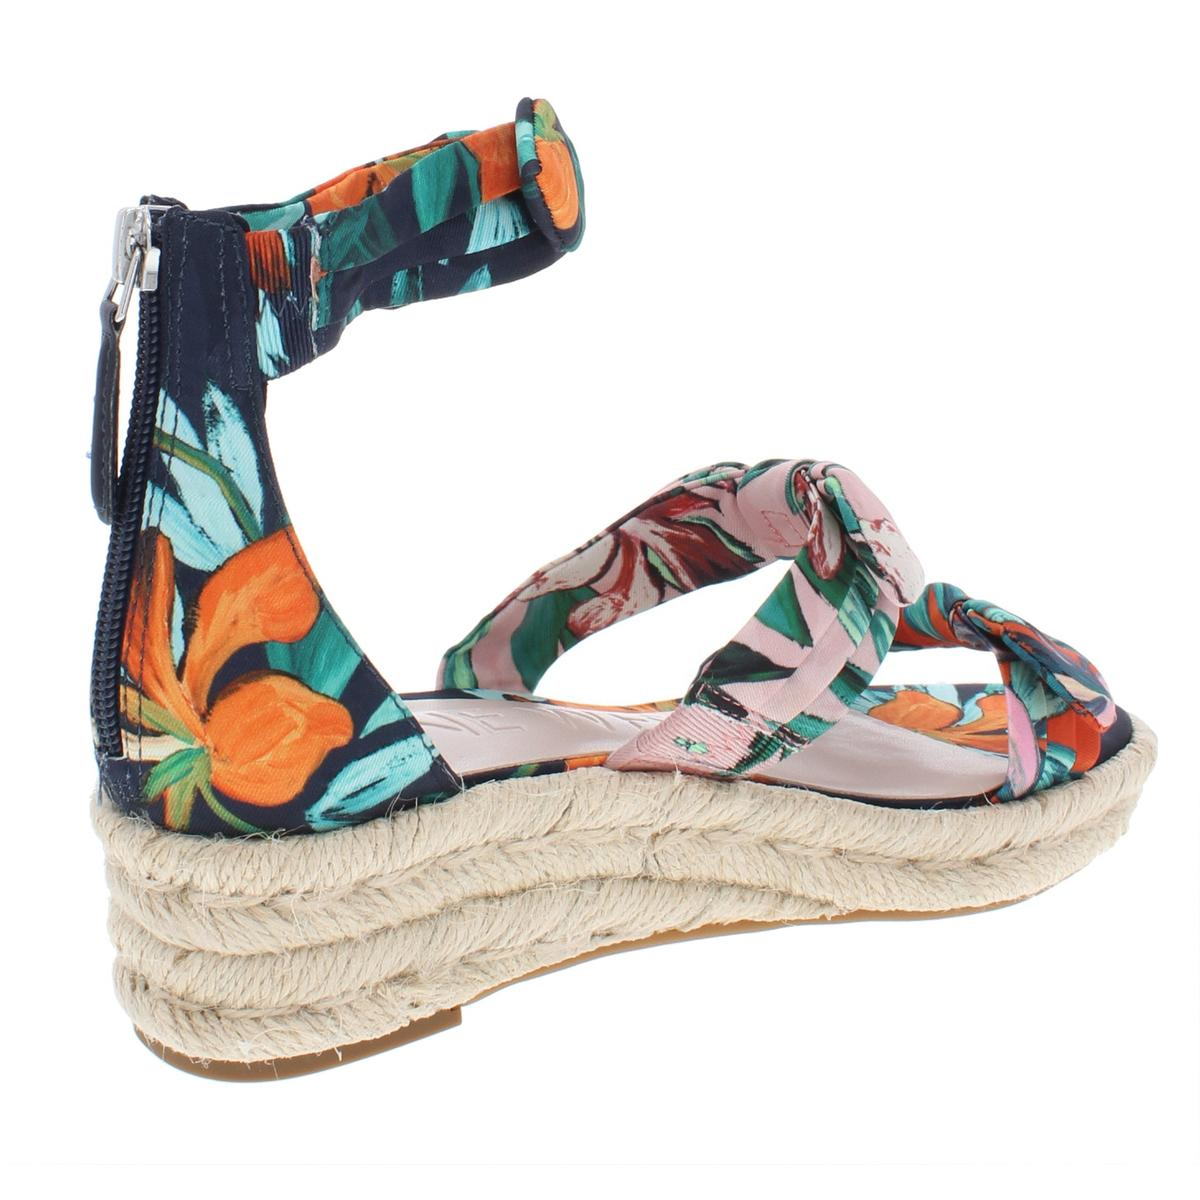 Nine-West-Womens-Allegro-Man-Made-Heel-Wedge-Sandals-Shoes-BHFO-7561 thumbnail 6